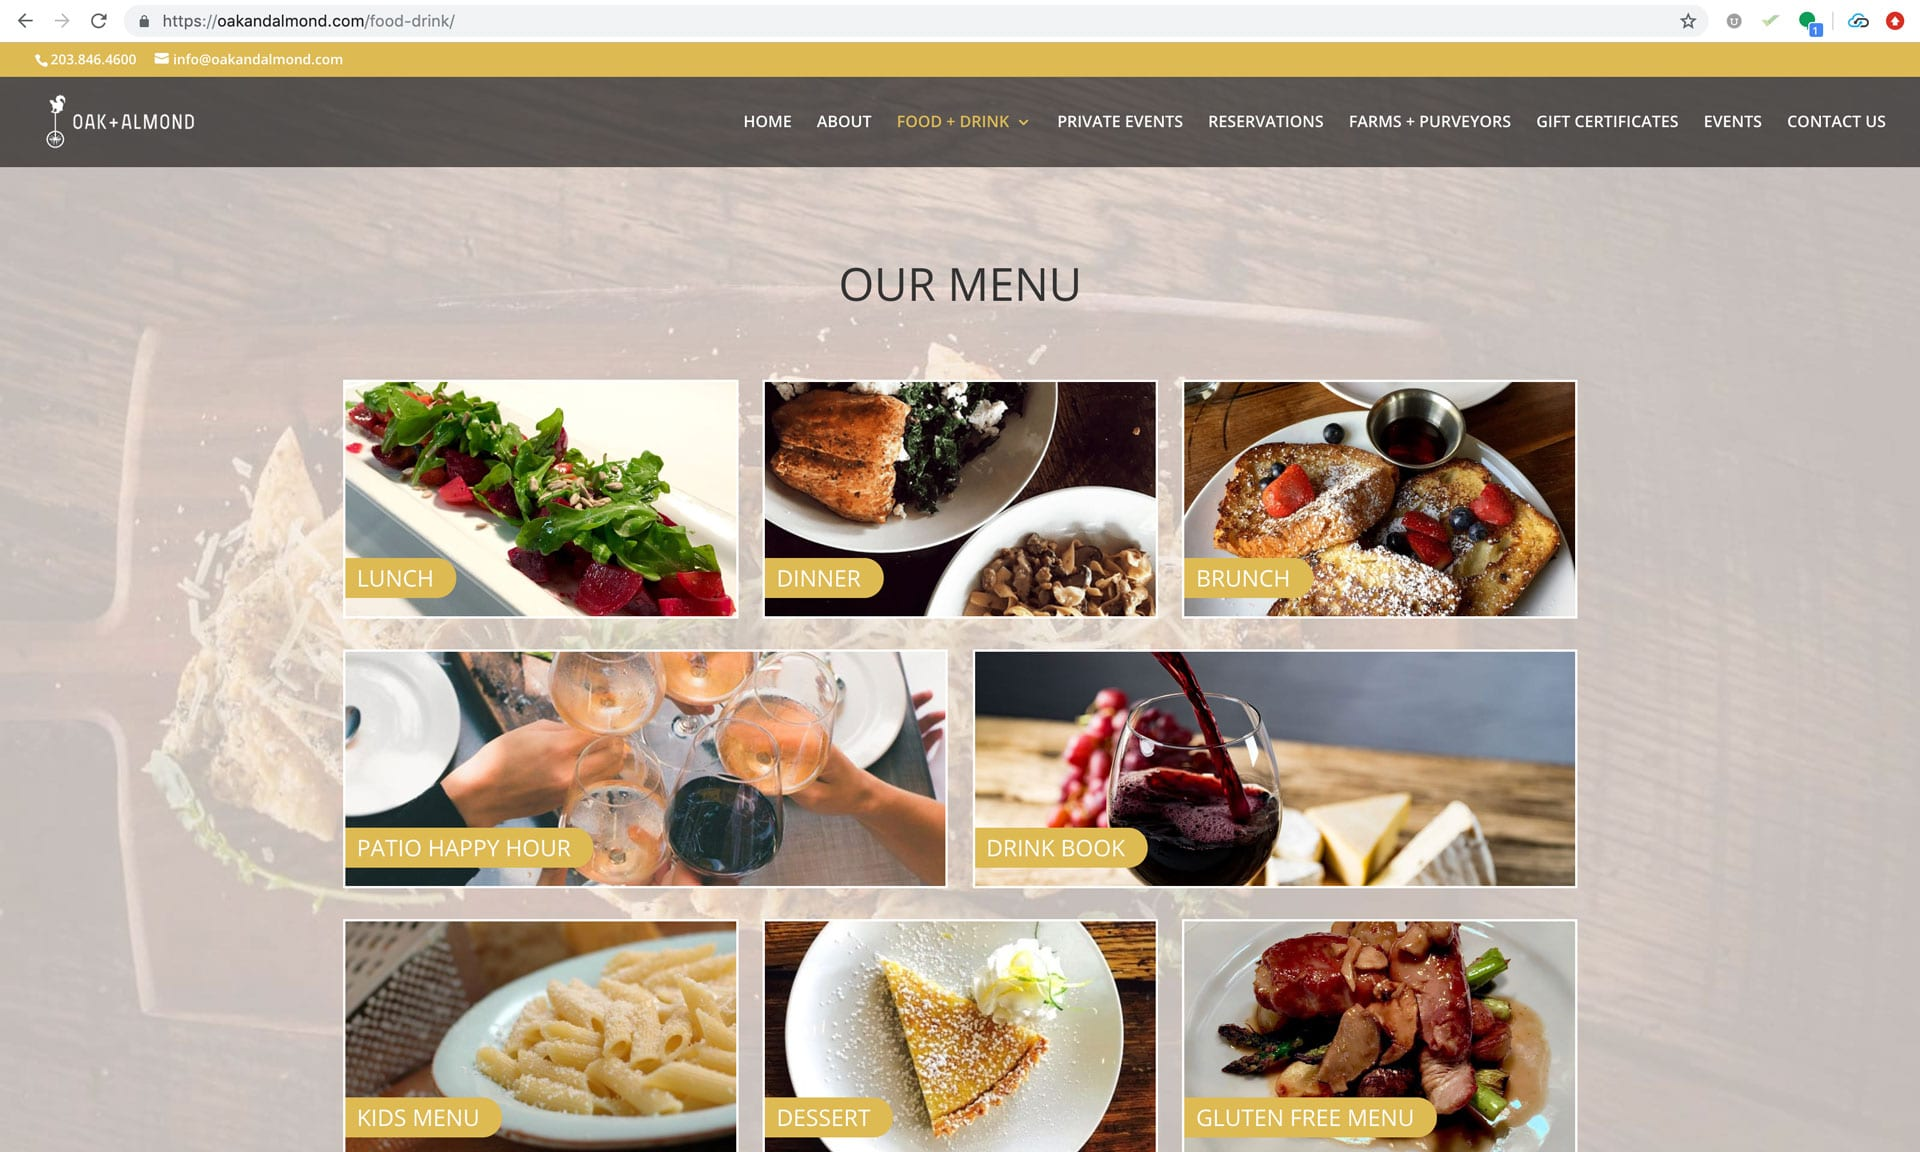 Oak + Almond Website Redesign - Wilton, CT - Aspire Digital Solutions